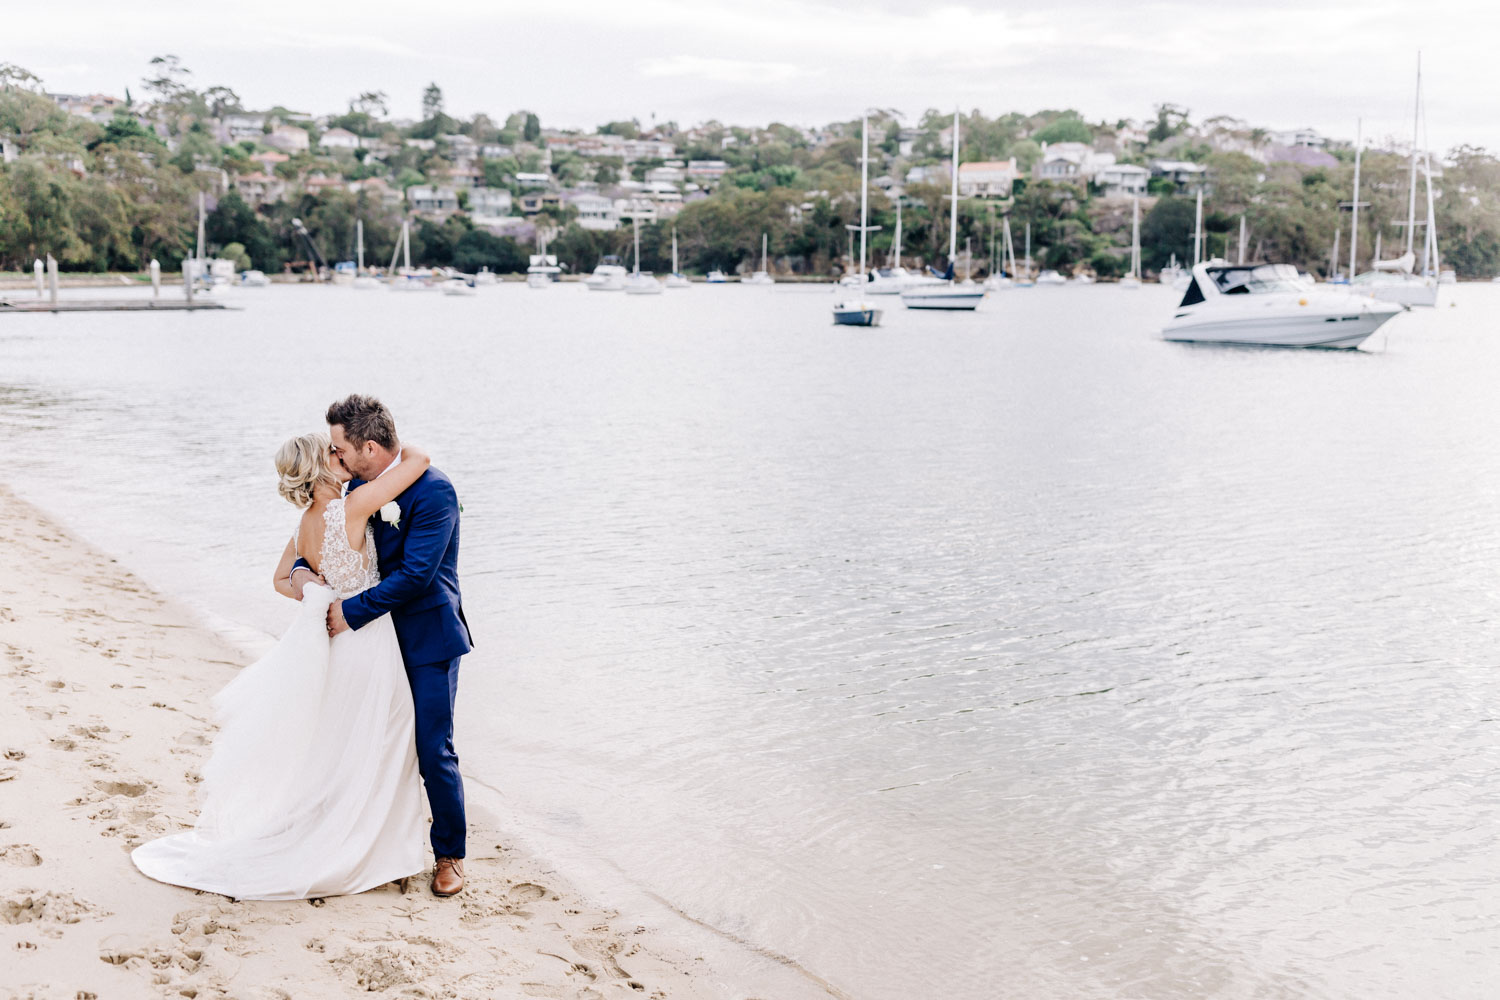 Orso The Spit wedding Jackie and Jared Kat Rollings photography couple kissing on the beach